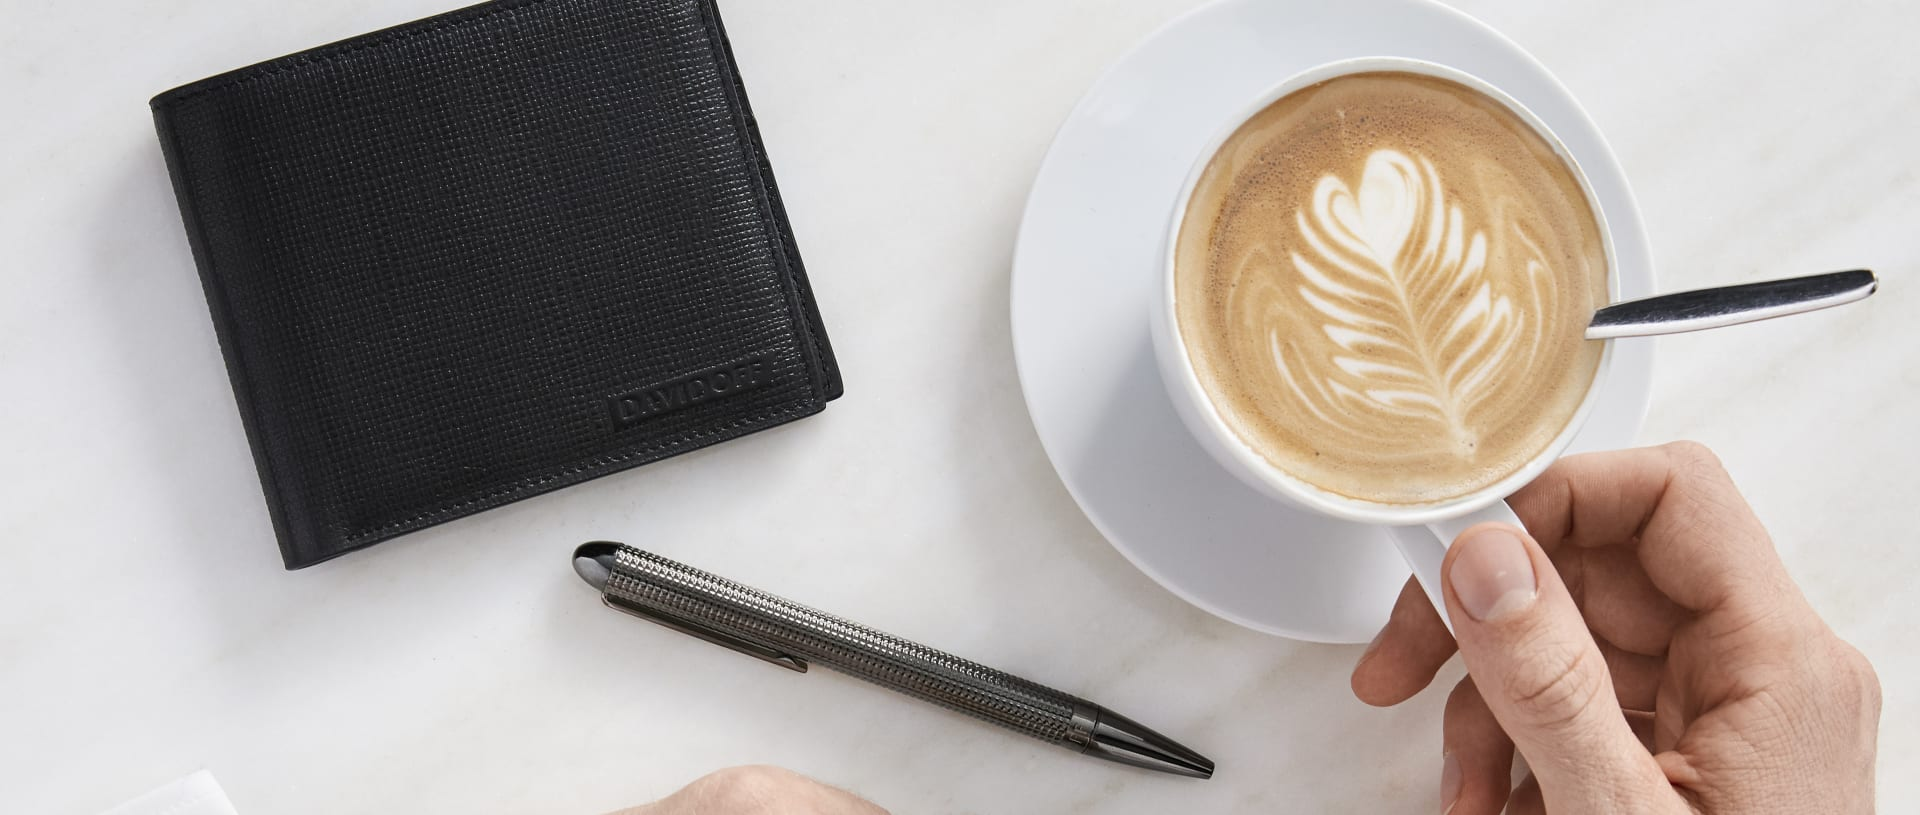 DAVIDOFF Coffee and accessories